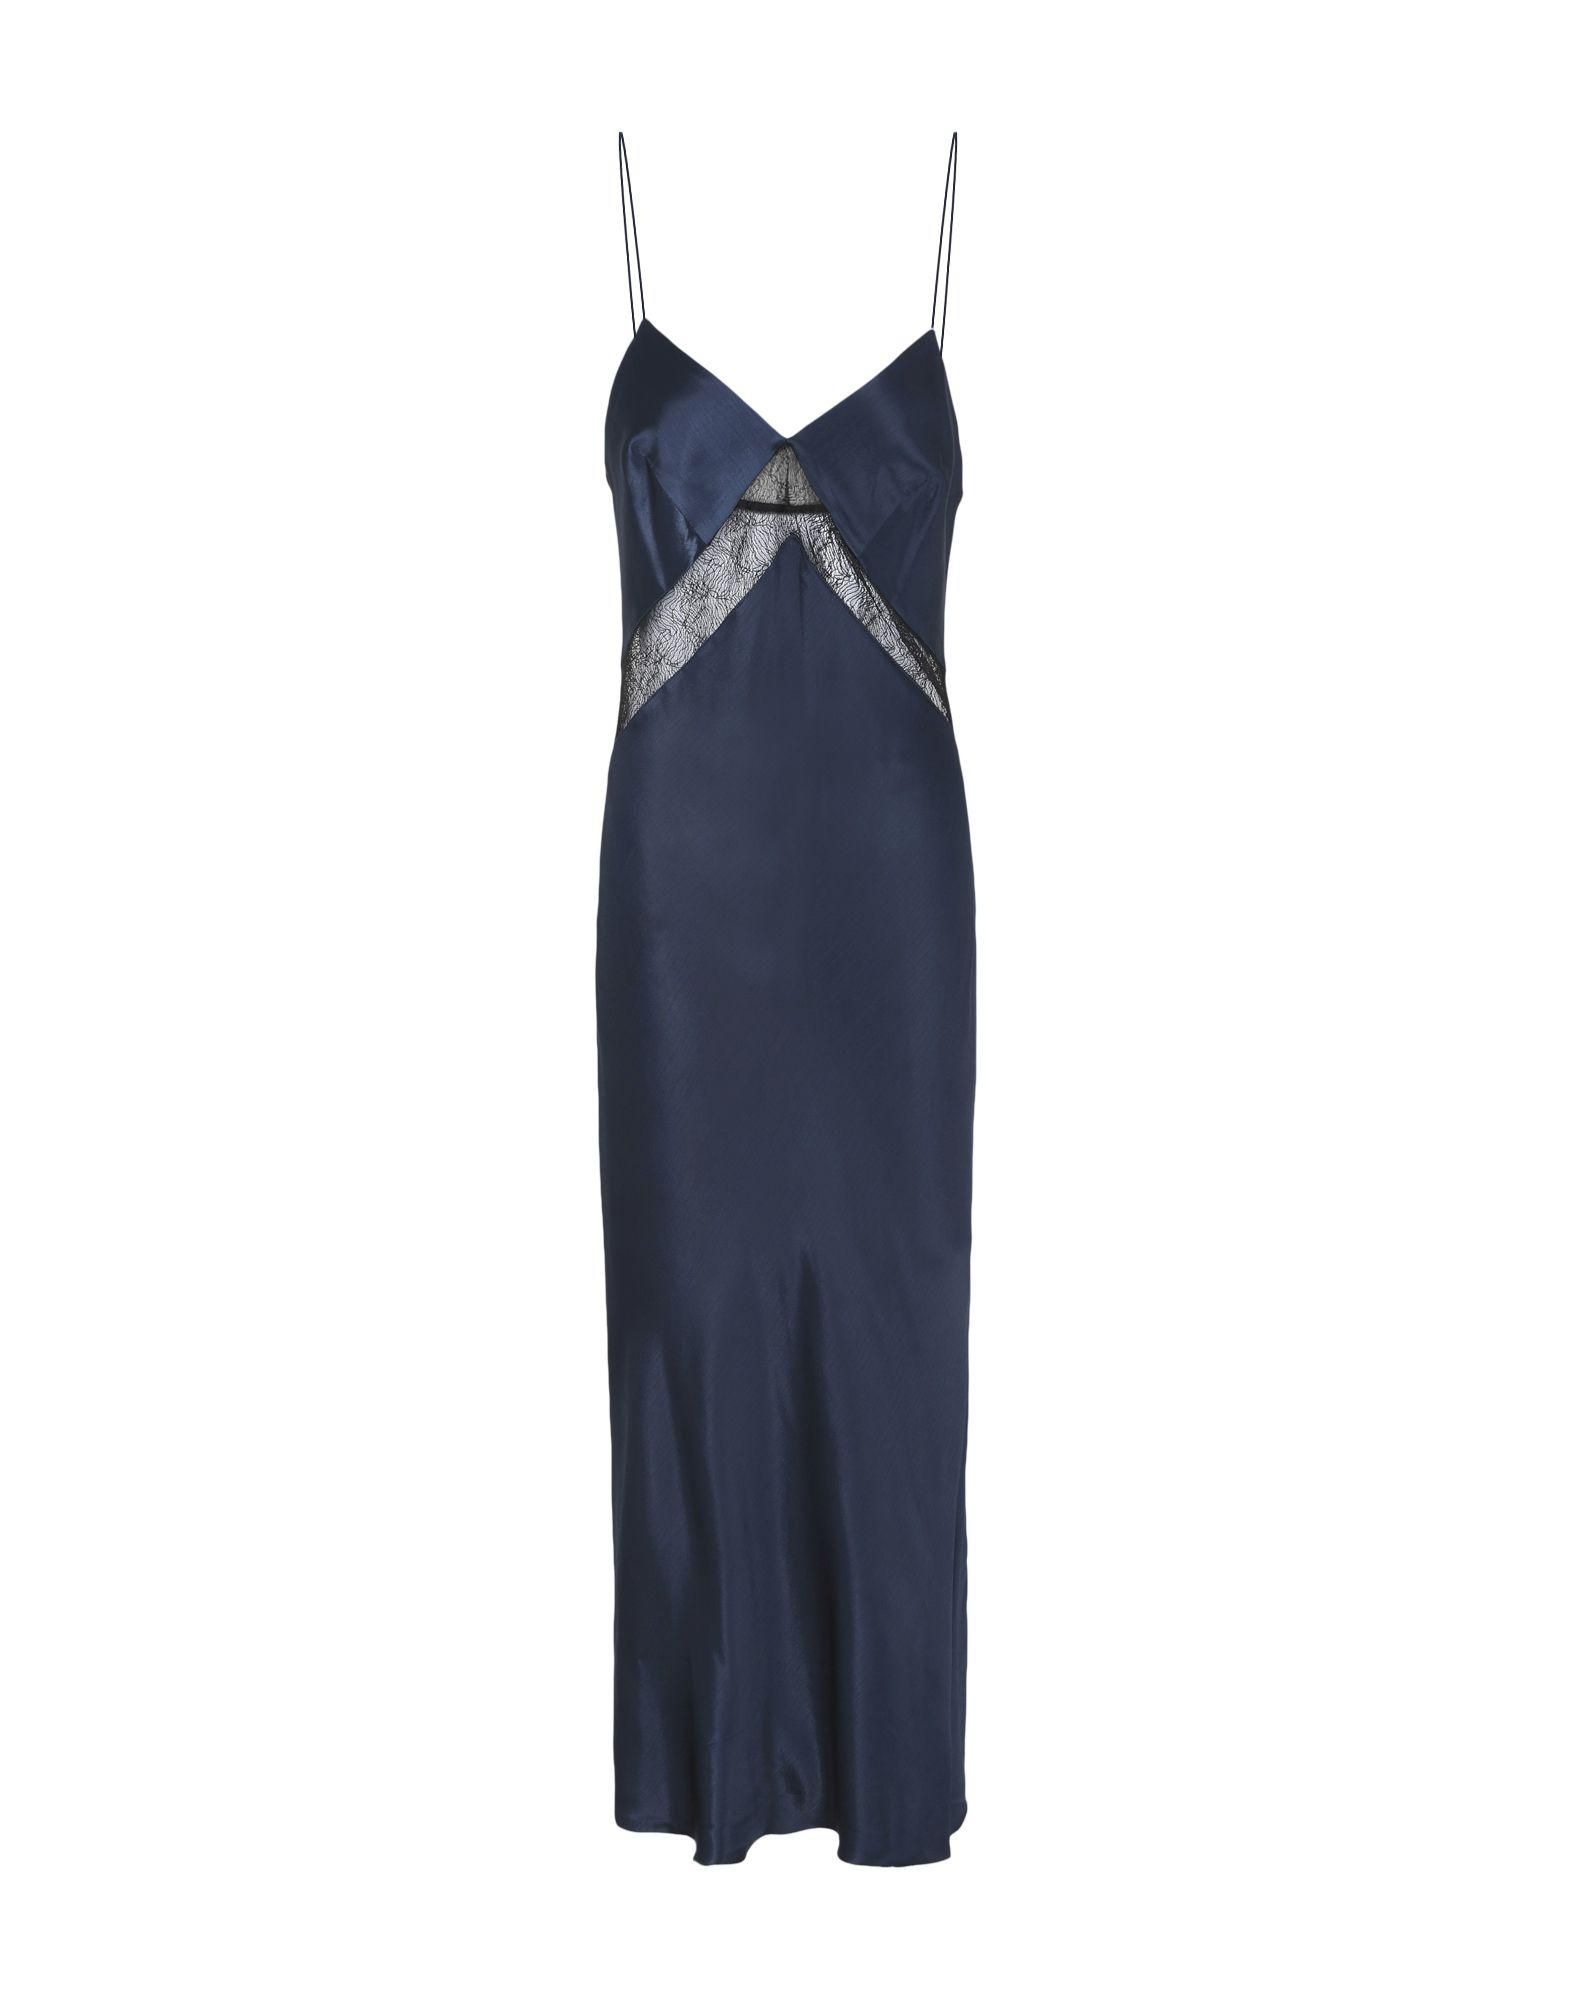 Fashionable Cheap Price DRESSES - 3/4 length dresses Bec&bridge Discount Sneakernews In China Cheap Price jrsQHfphQX